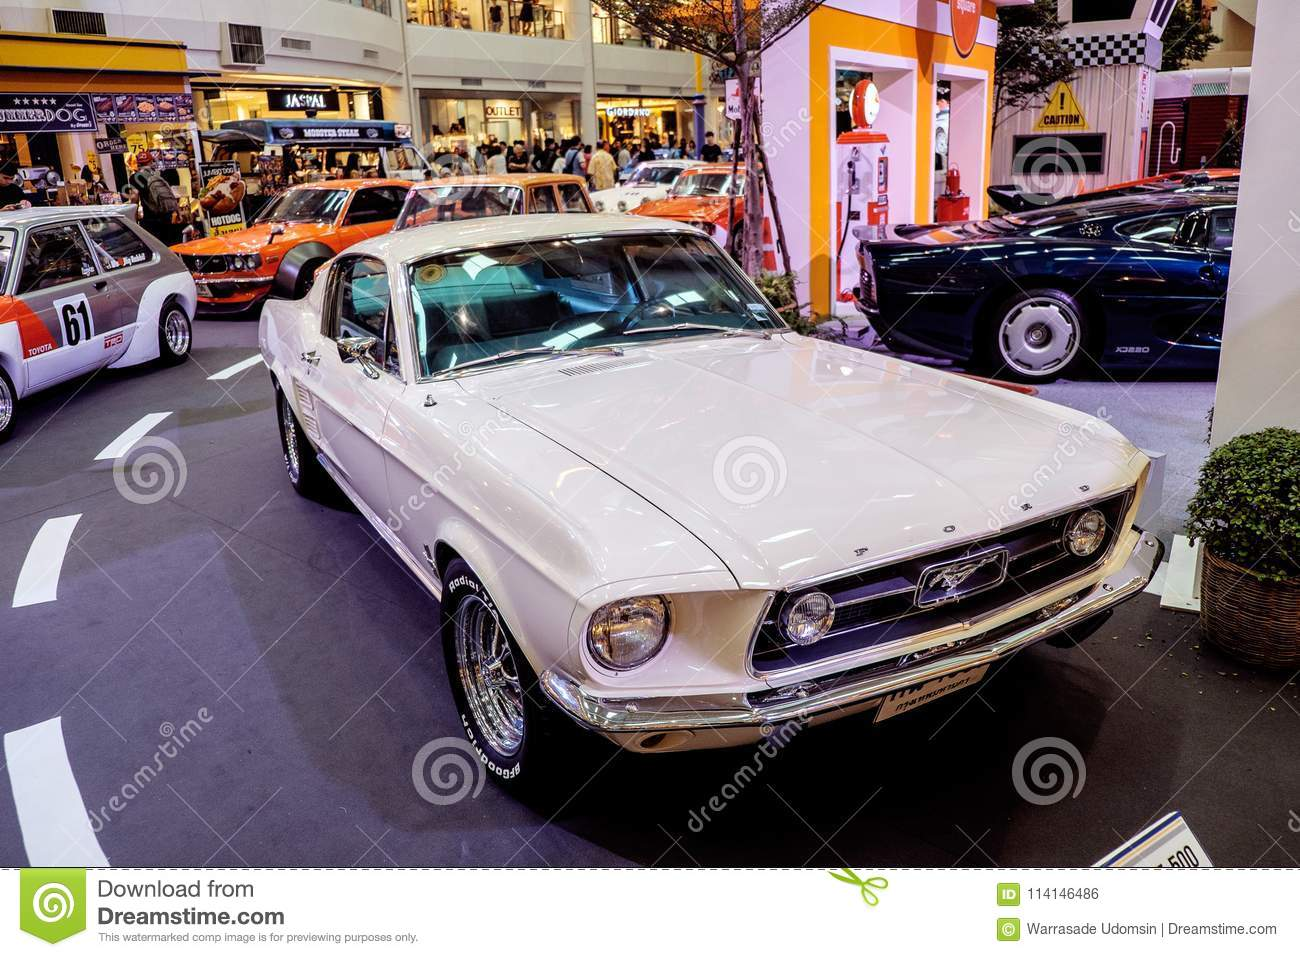 Bangkok thailand march 11 2018 a vintage car ford mustang shelby gt